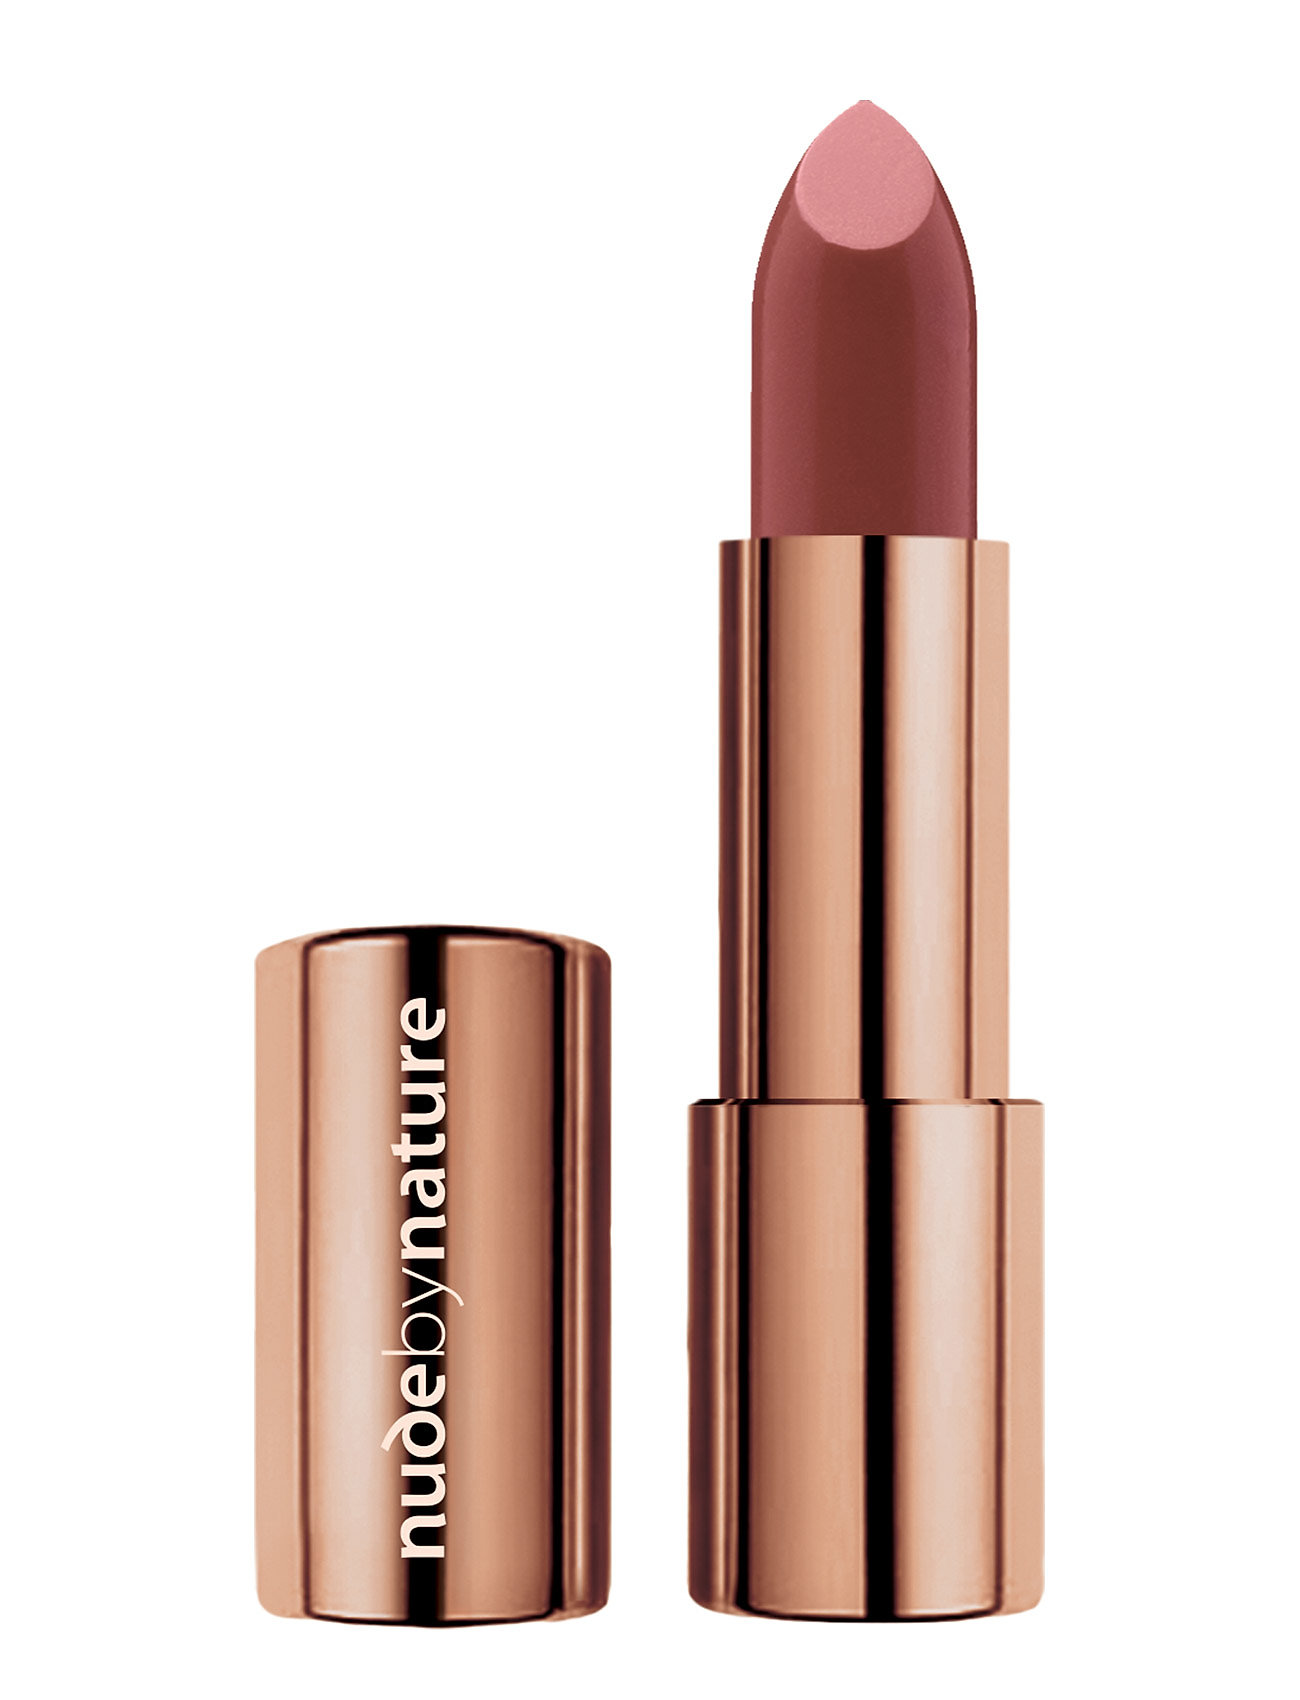 Image of Moisture Shine Lipstick Dusky Nude 06 Læbestift Makeup Nude By Nature (3430427481)